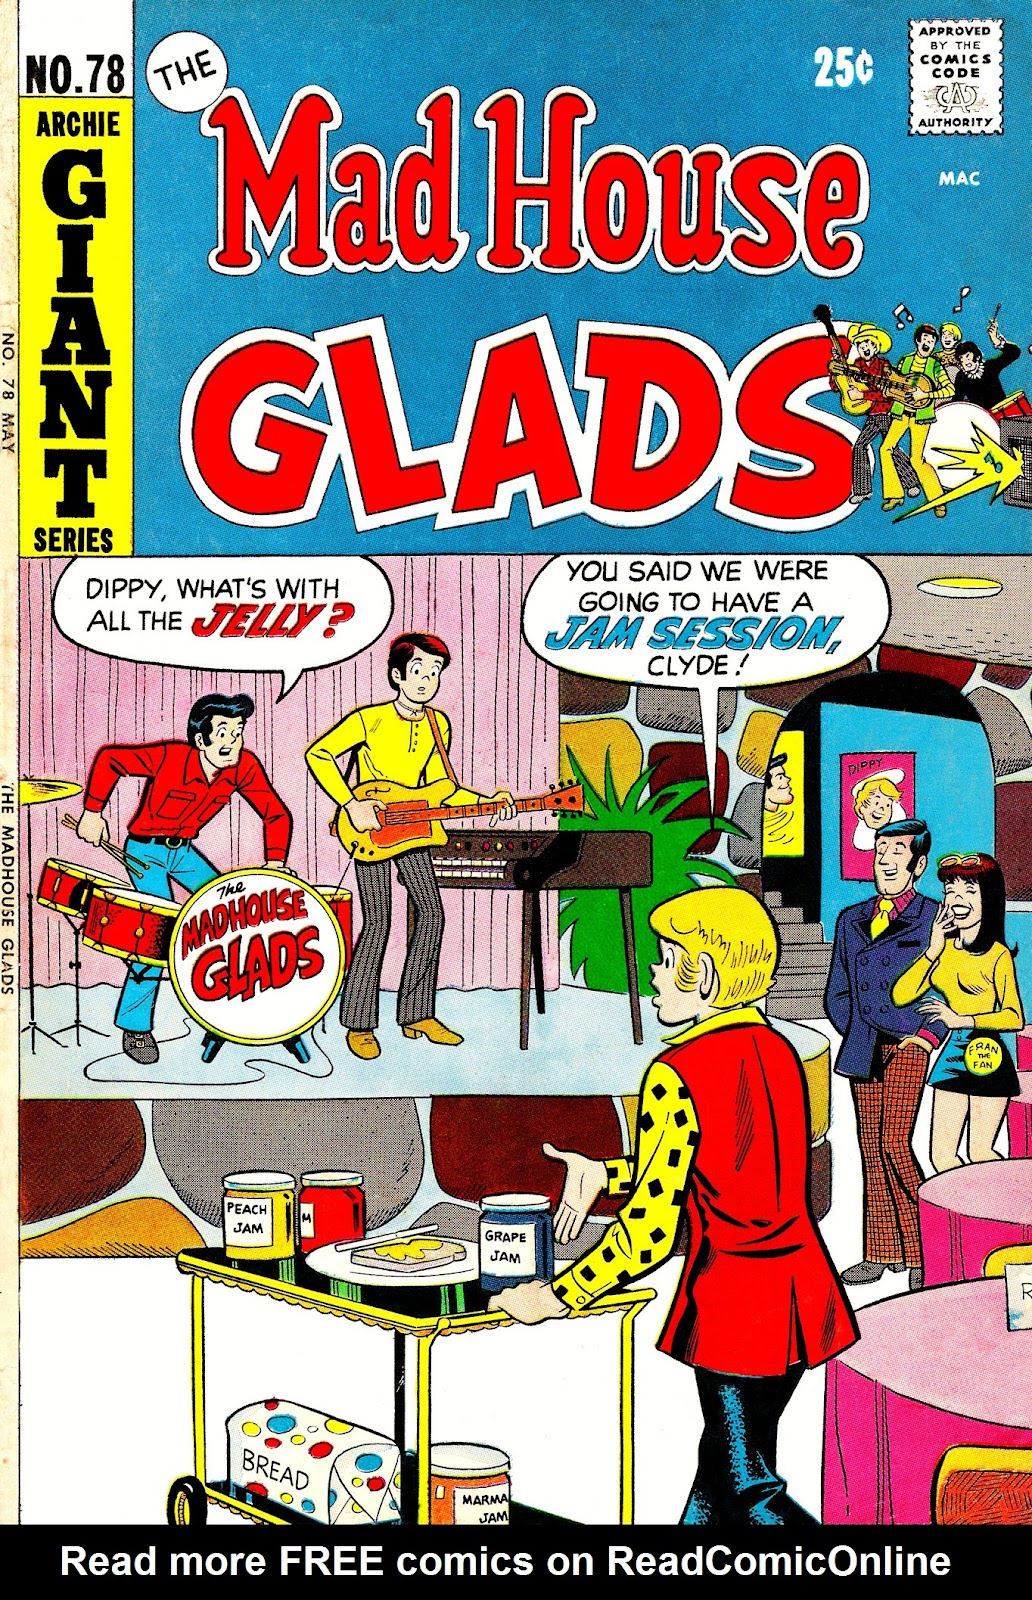 Read online The Mad House Glads comic -  Issue #78 - 1